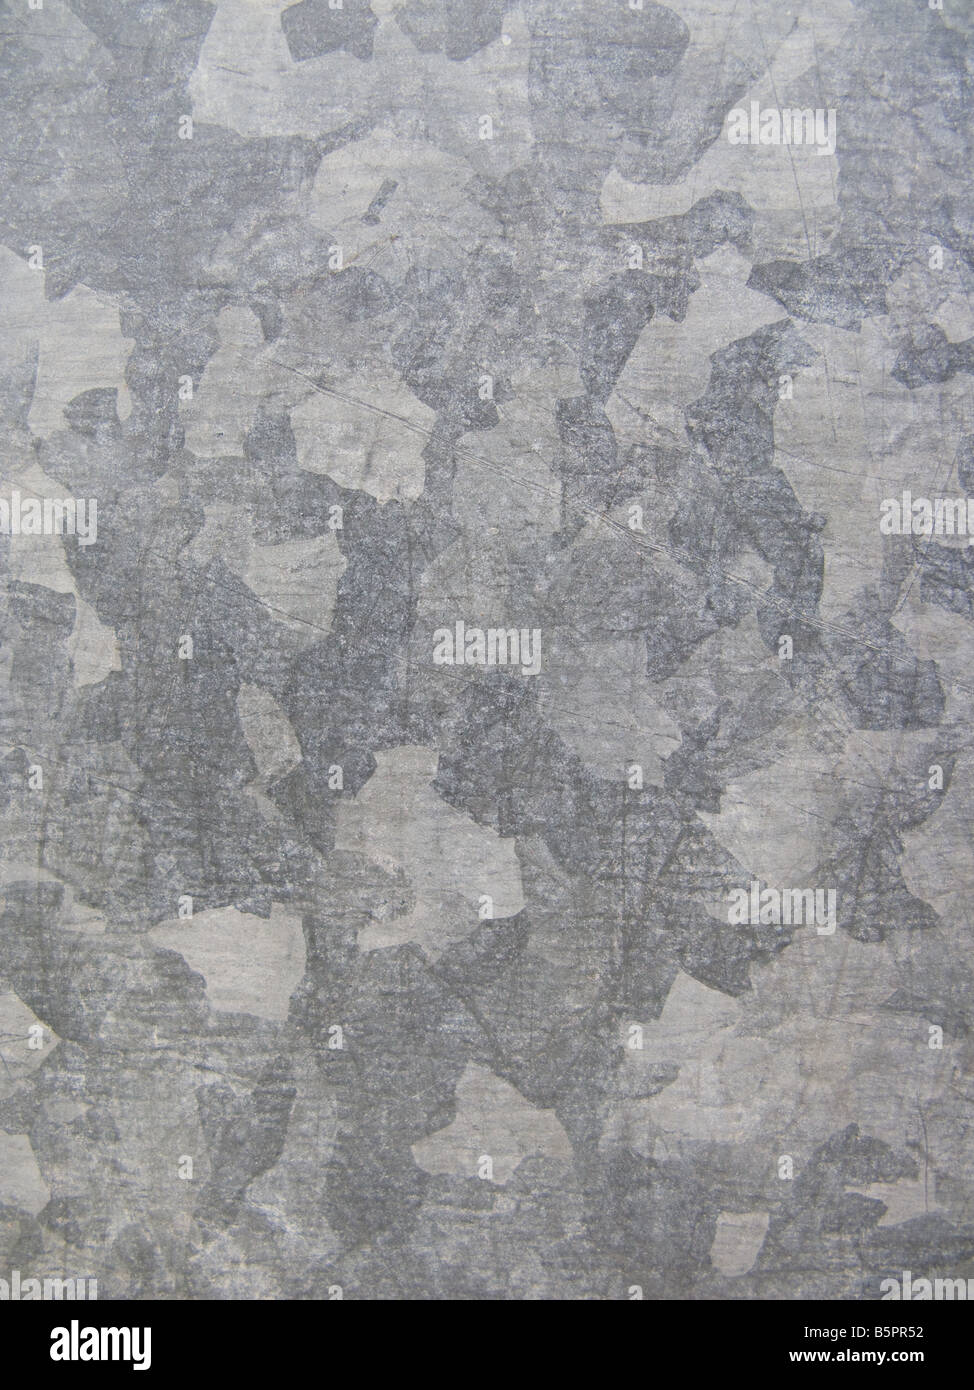 Galvanized plated metal surface. Abstract background texture. - Stock Image